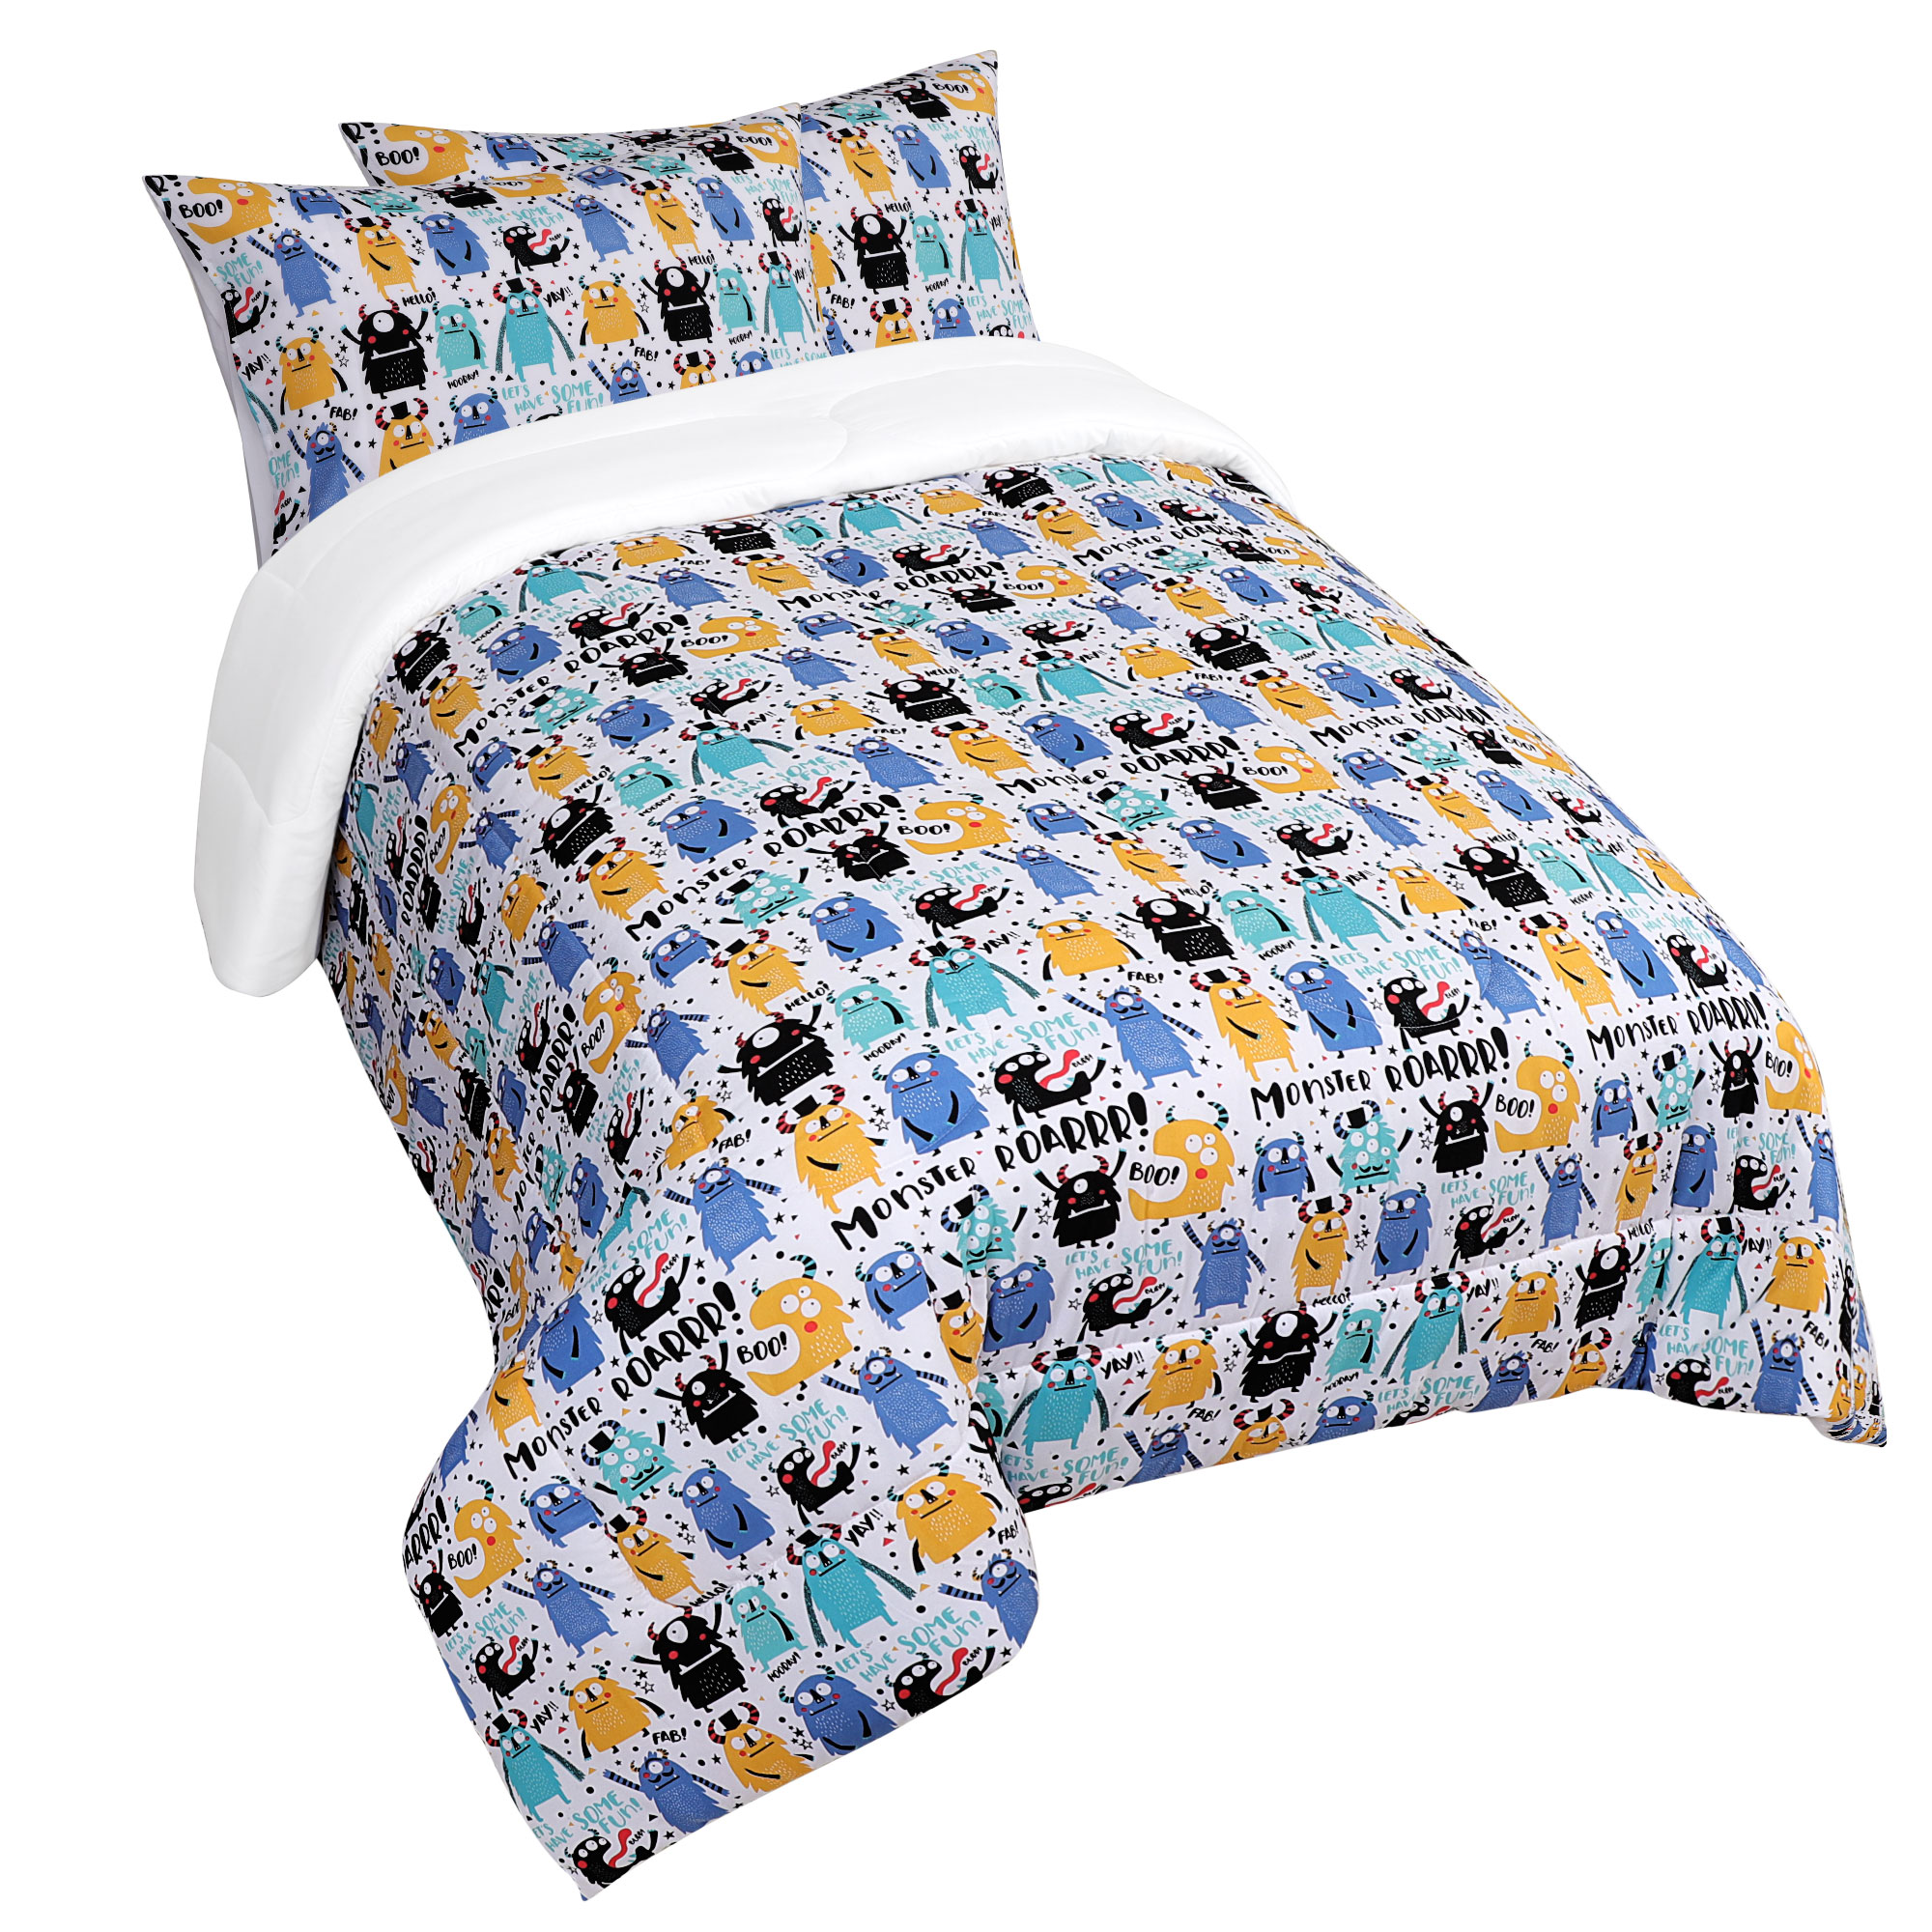 3 Piece Polyester Microfiber Kids Bedding Comforter Set Monster Twin